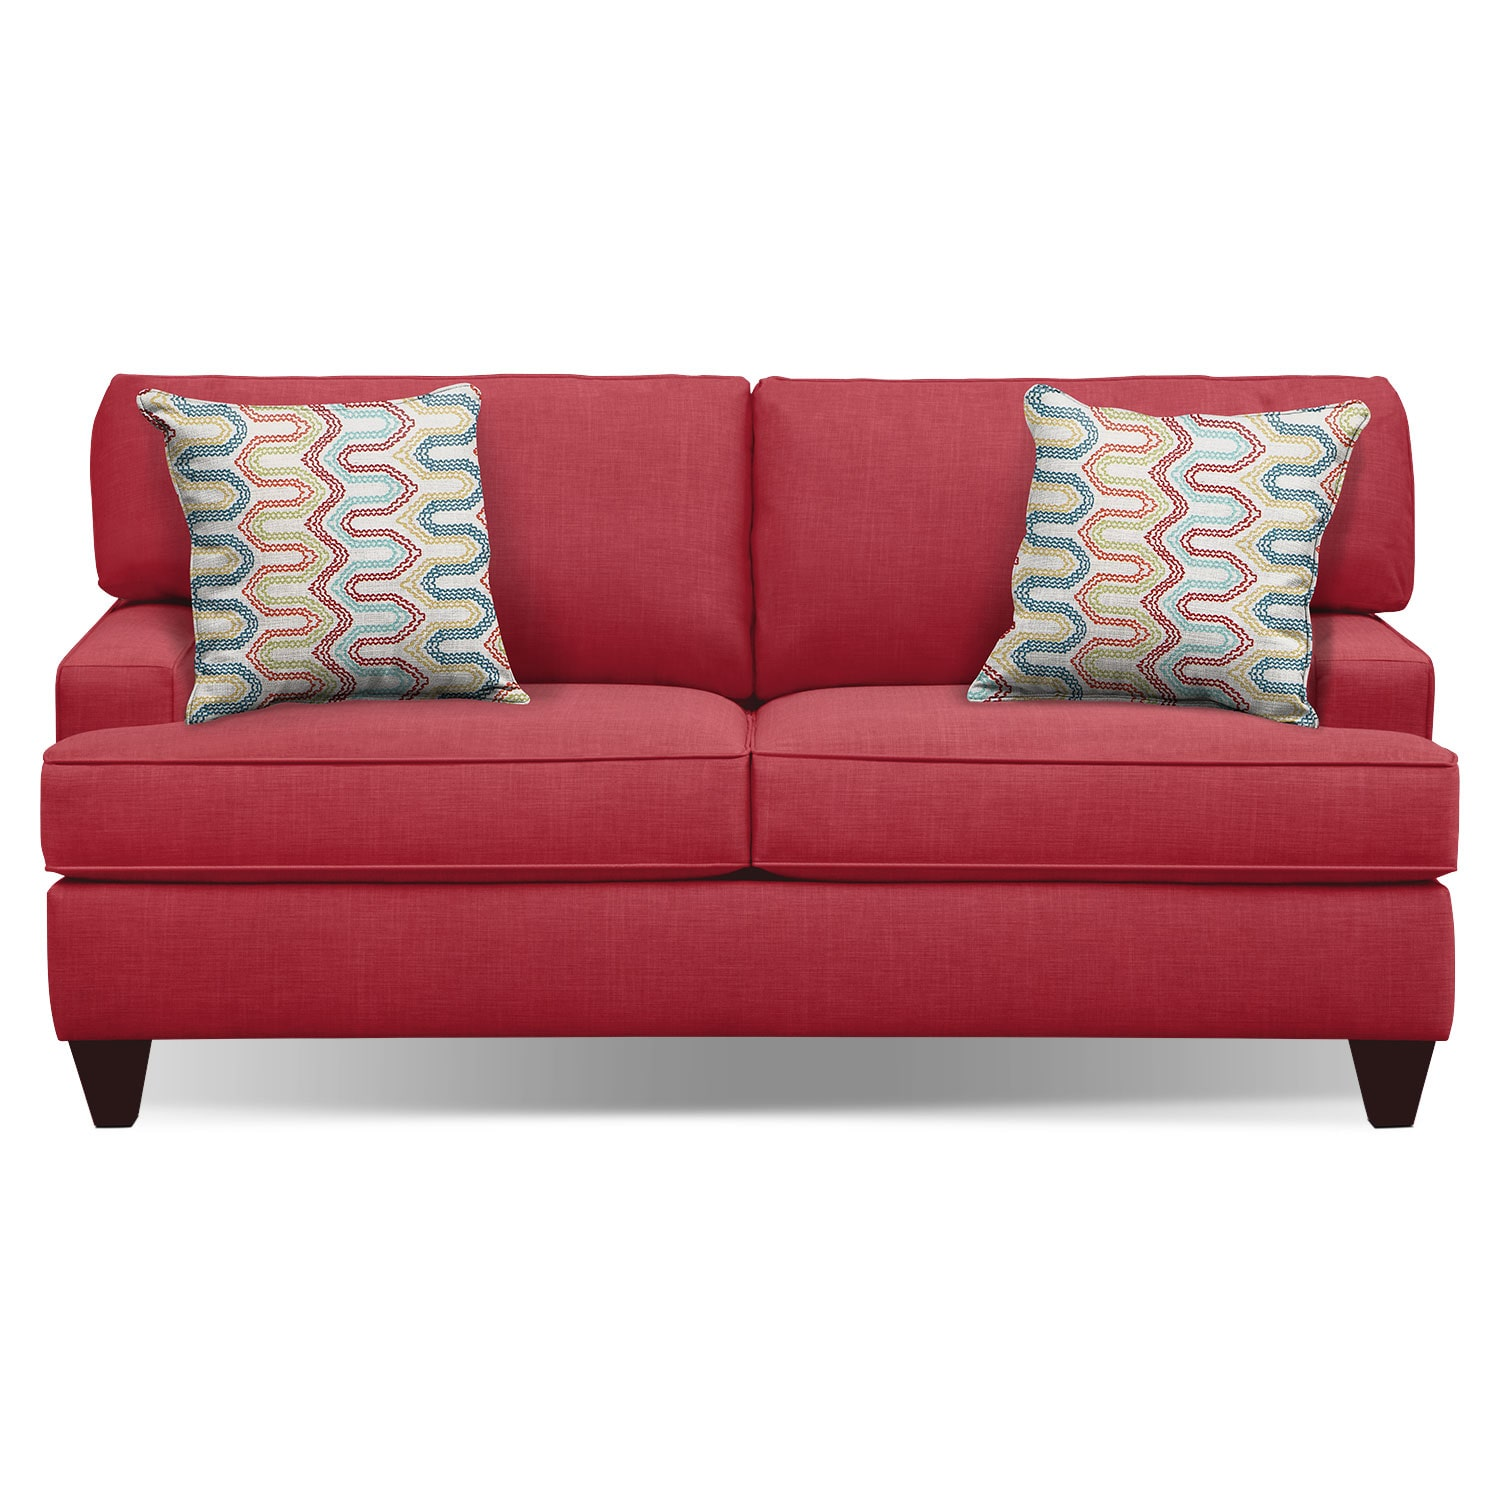 "Conner Red 75"" Sofa"